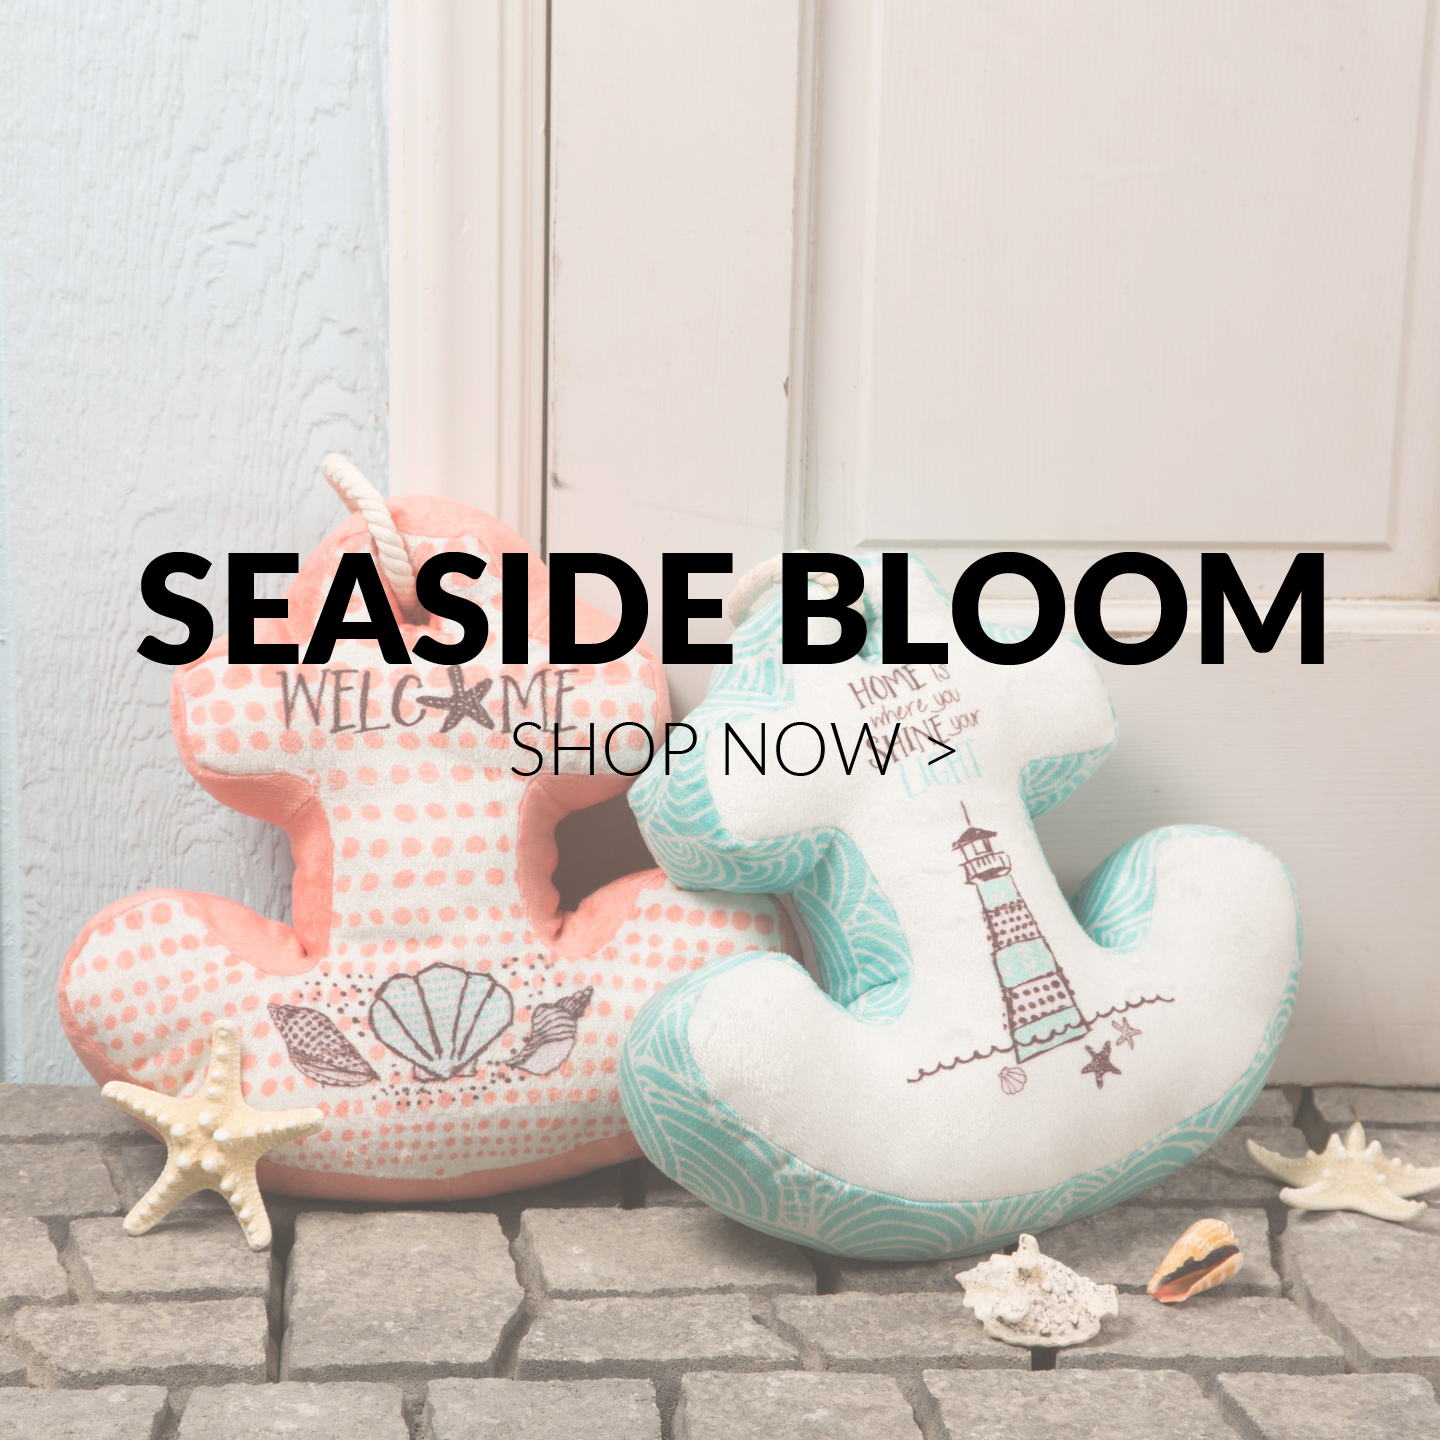 Seaside Bloom by Amylee Weeks